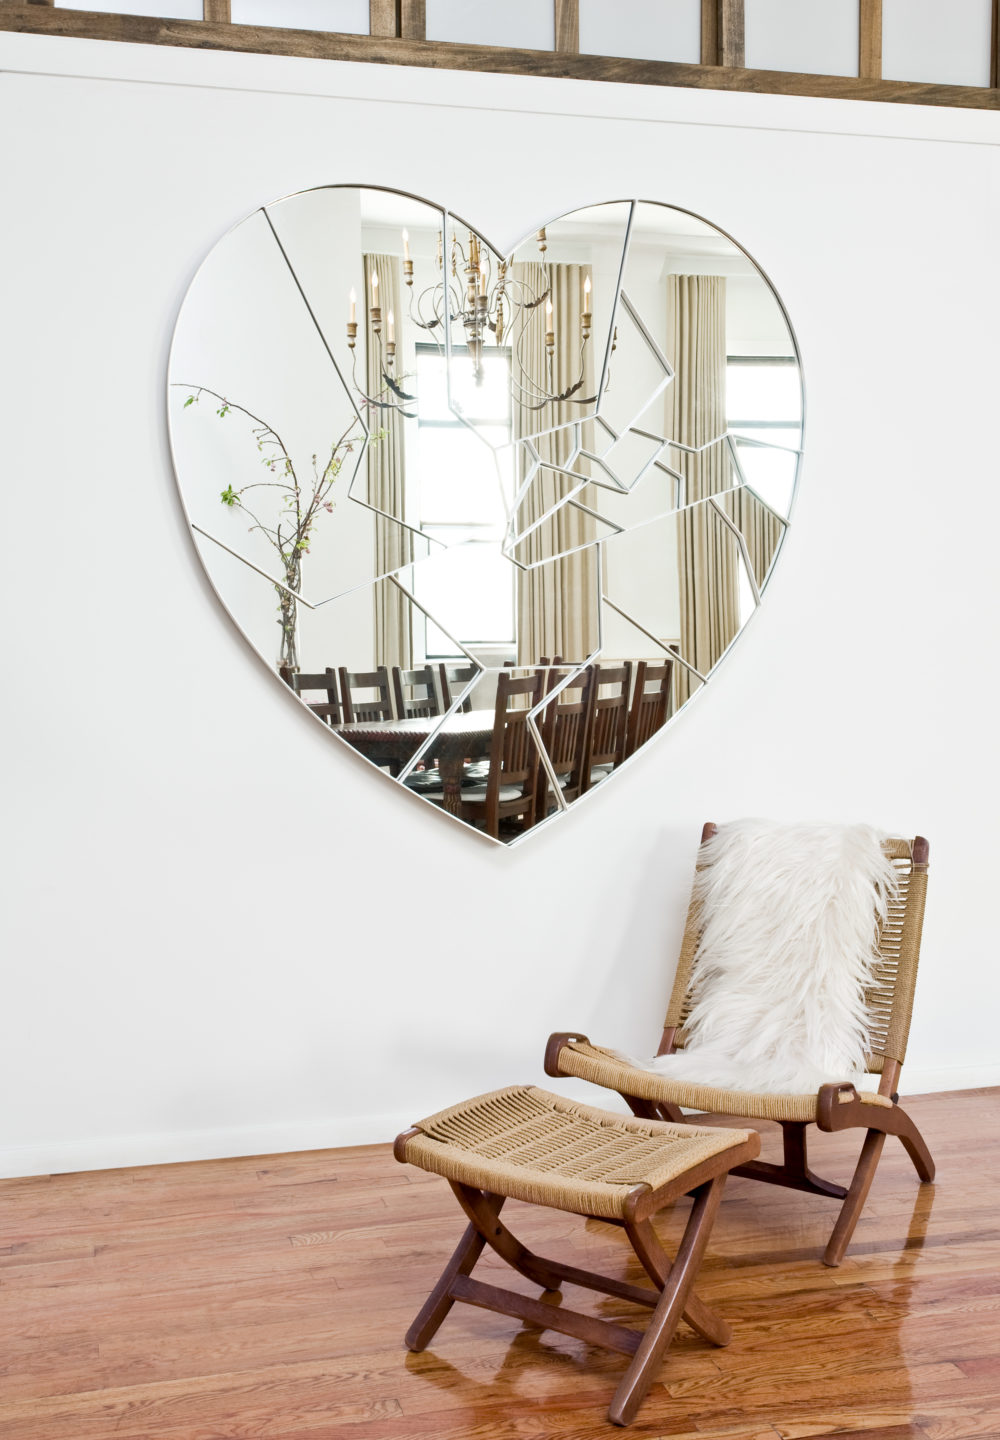 WILD-AT-HEART-mirror-1-nicole-fuller-product-information